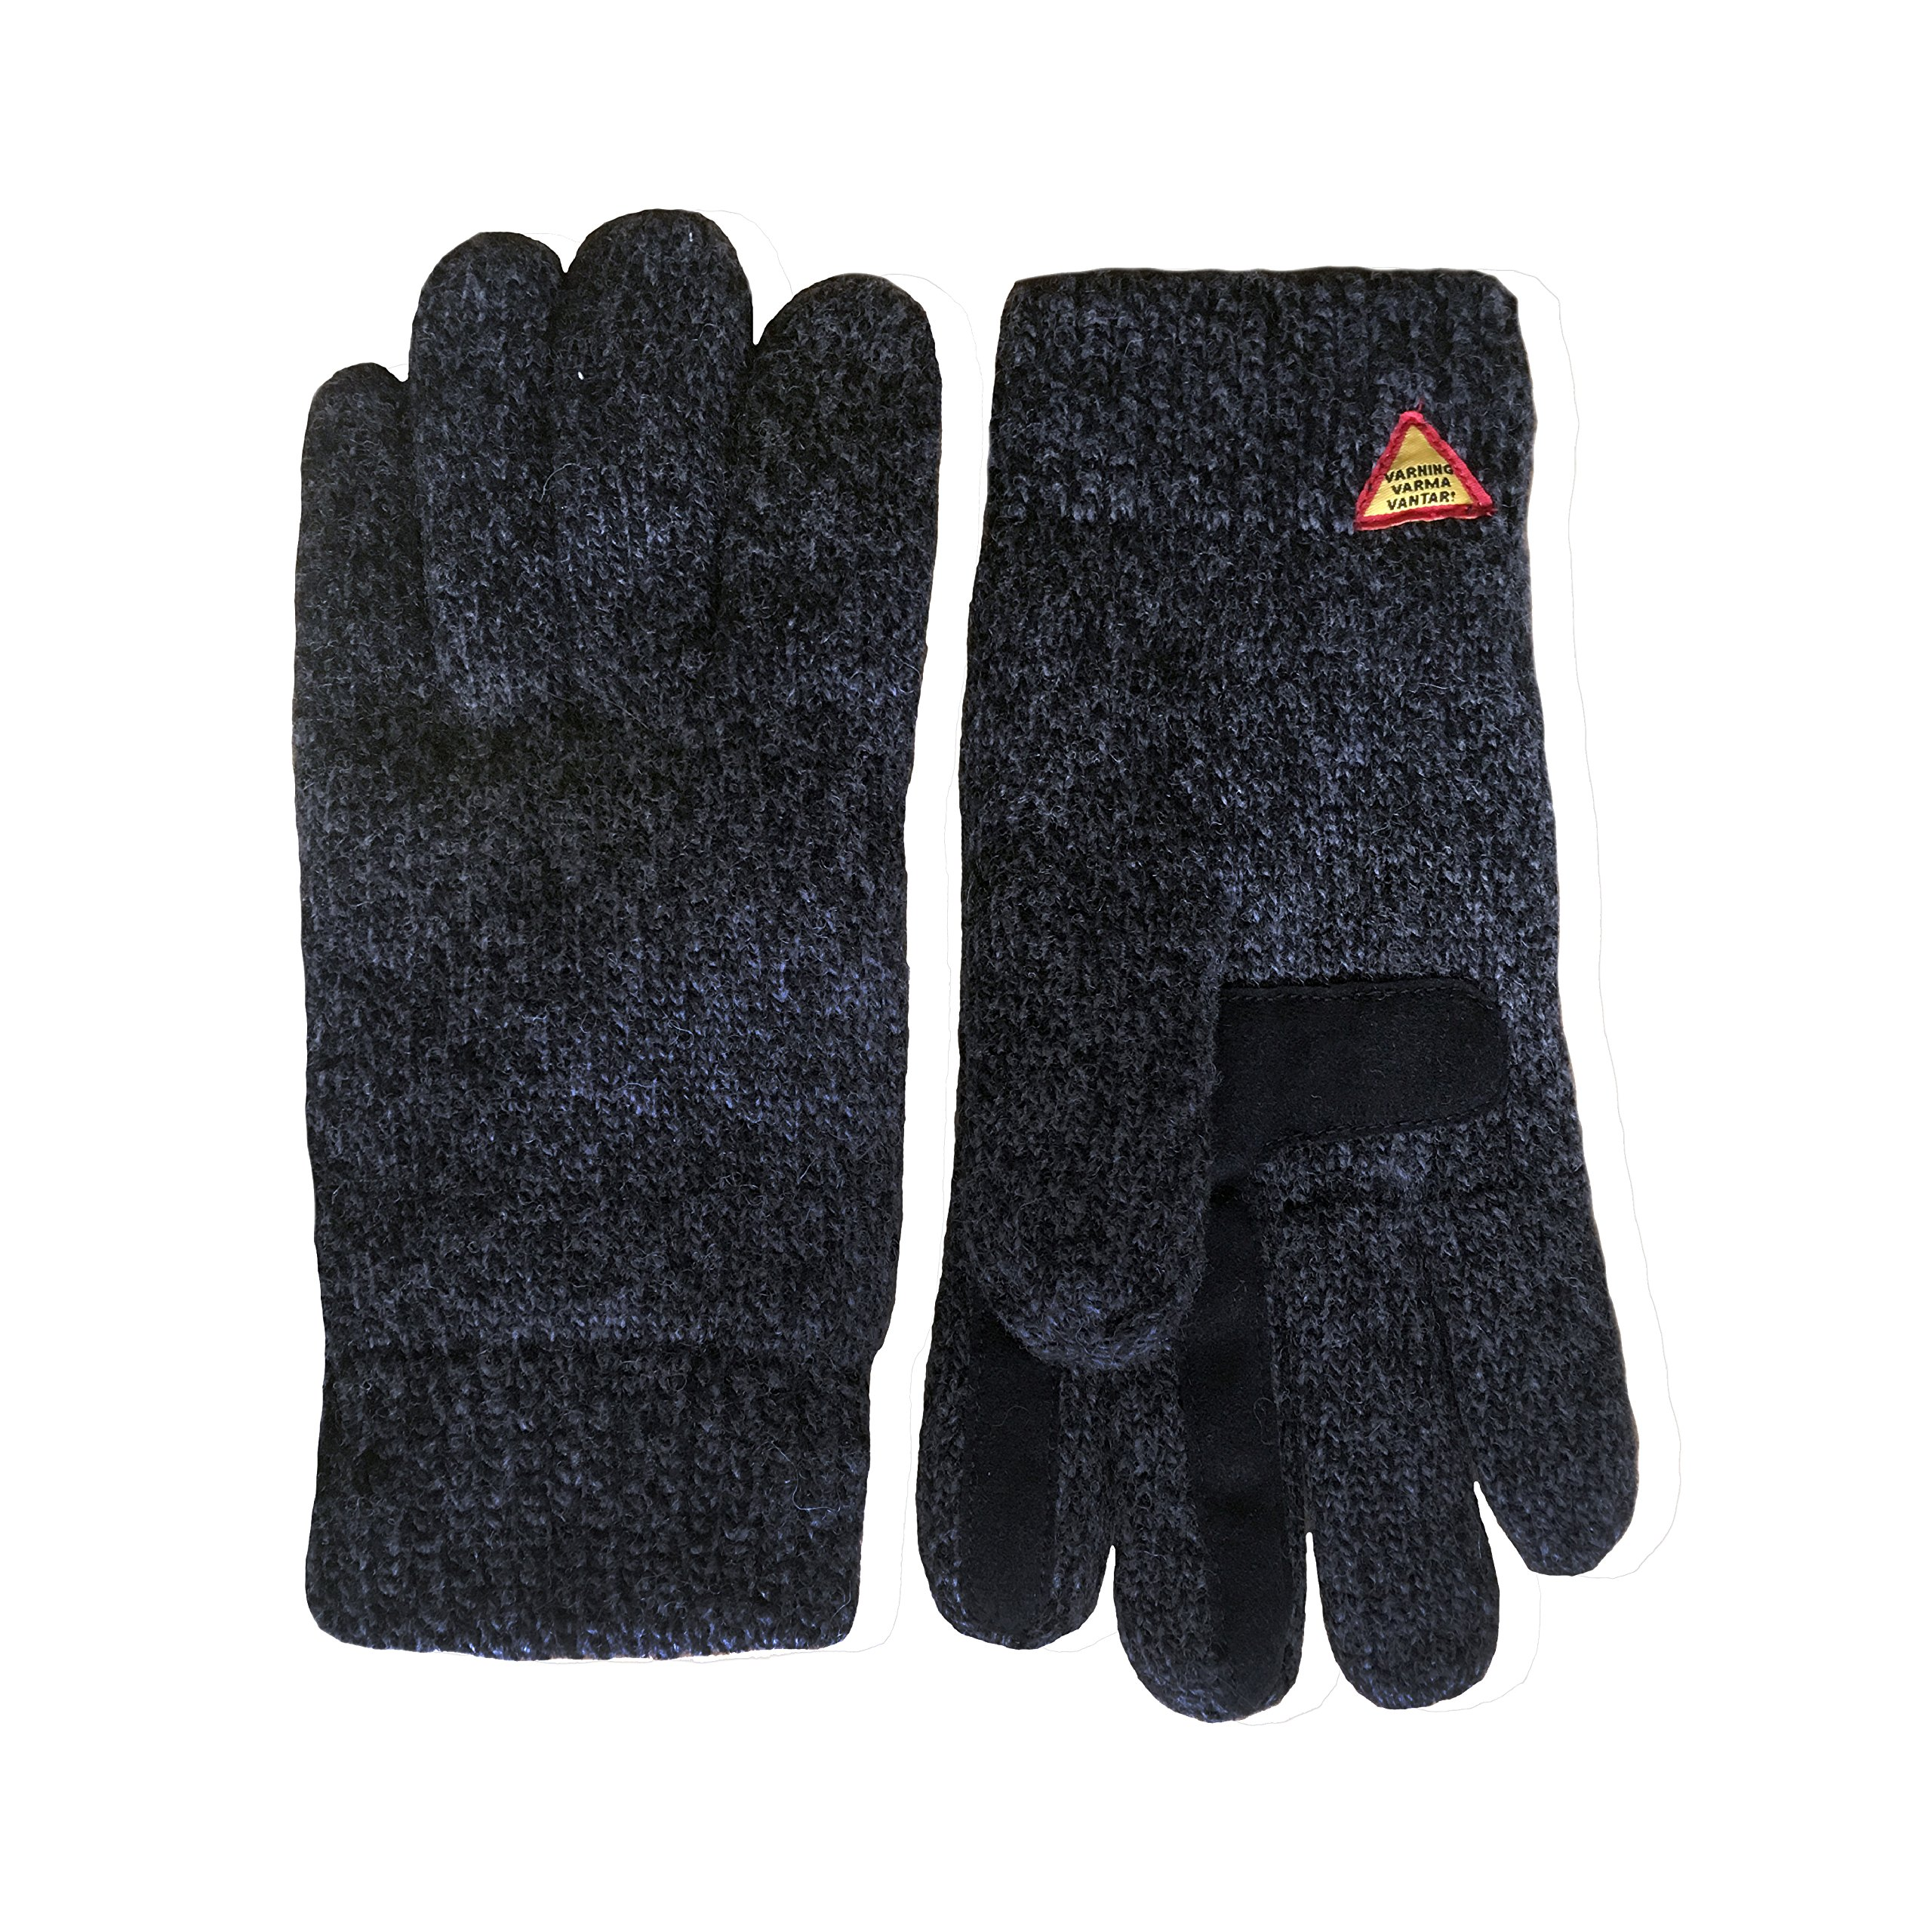 Swedish Dangerously Warm Suede Touch Gloves (Karg Rörö, Small) by Öjbro Vantfabrik